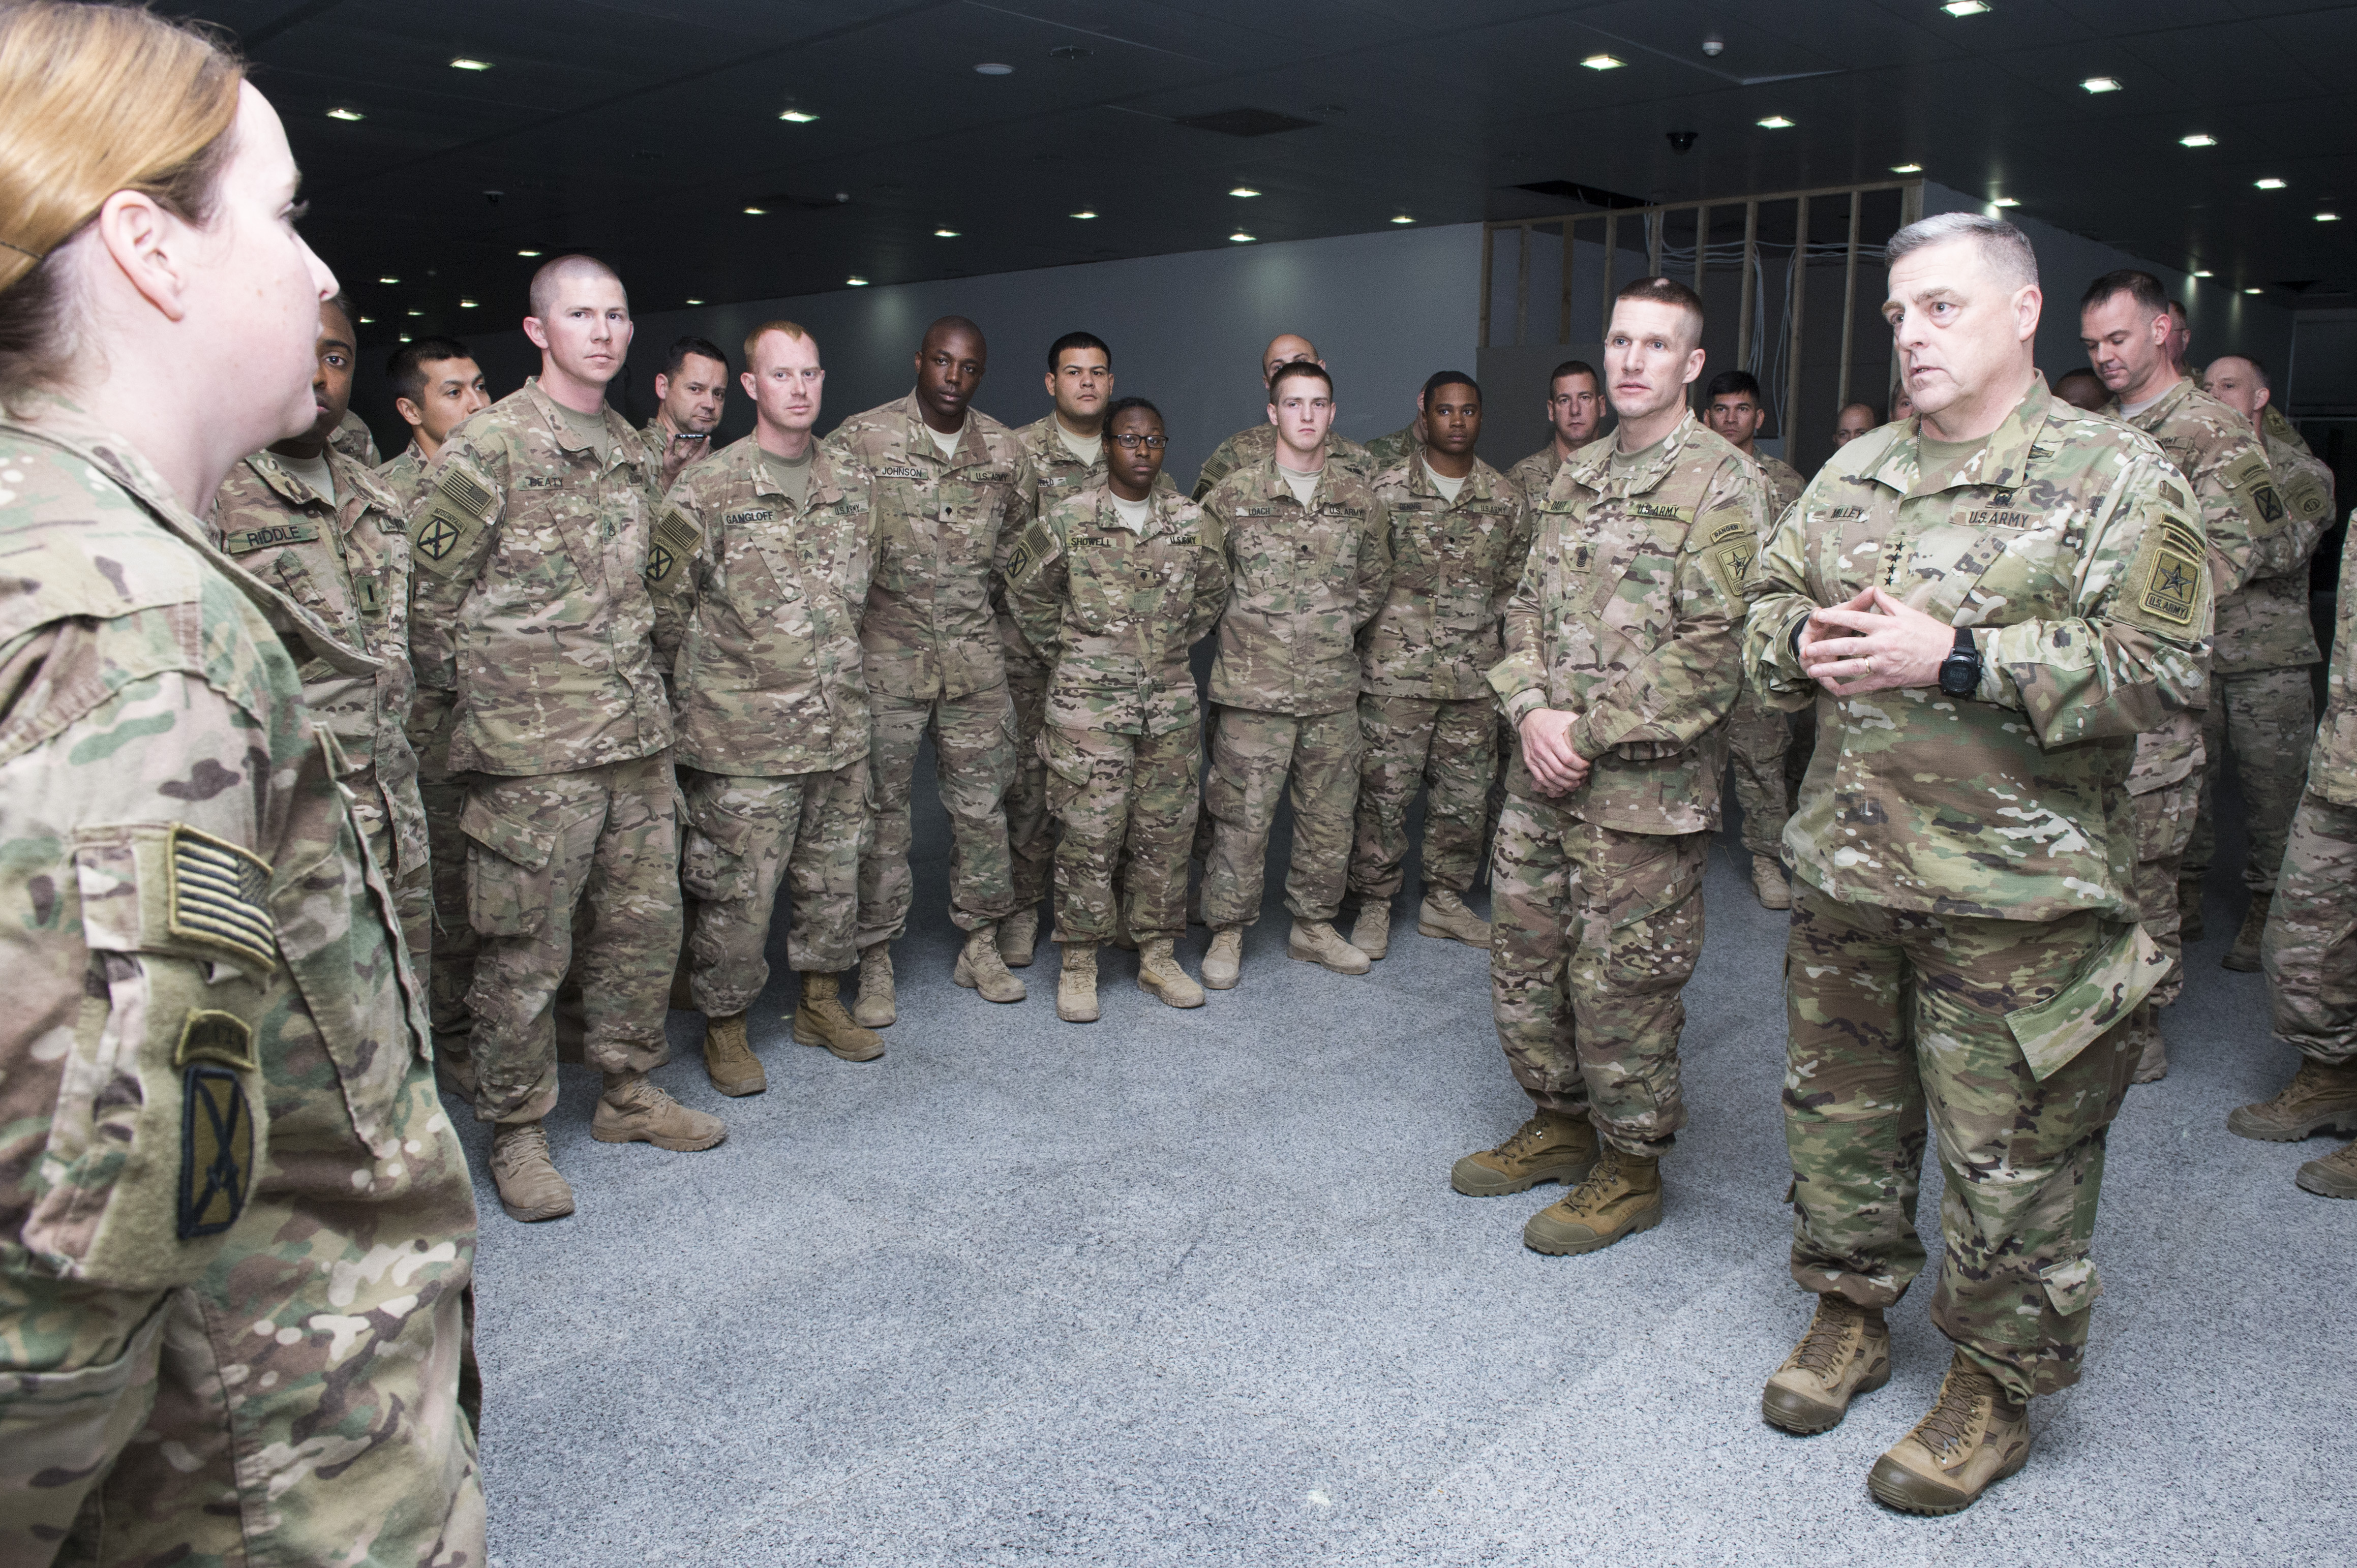 U.S. Army Chief of Staff, Gen. Mark A. Milley, discusses topics with Soldiers serving in the 10th Mountain Division, 7th Engineer Battalion in Erbil, Iraq, Dec. 18. Milley was on a five day tour of the U.S. Central Command area of responsibility for operat